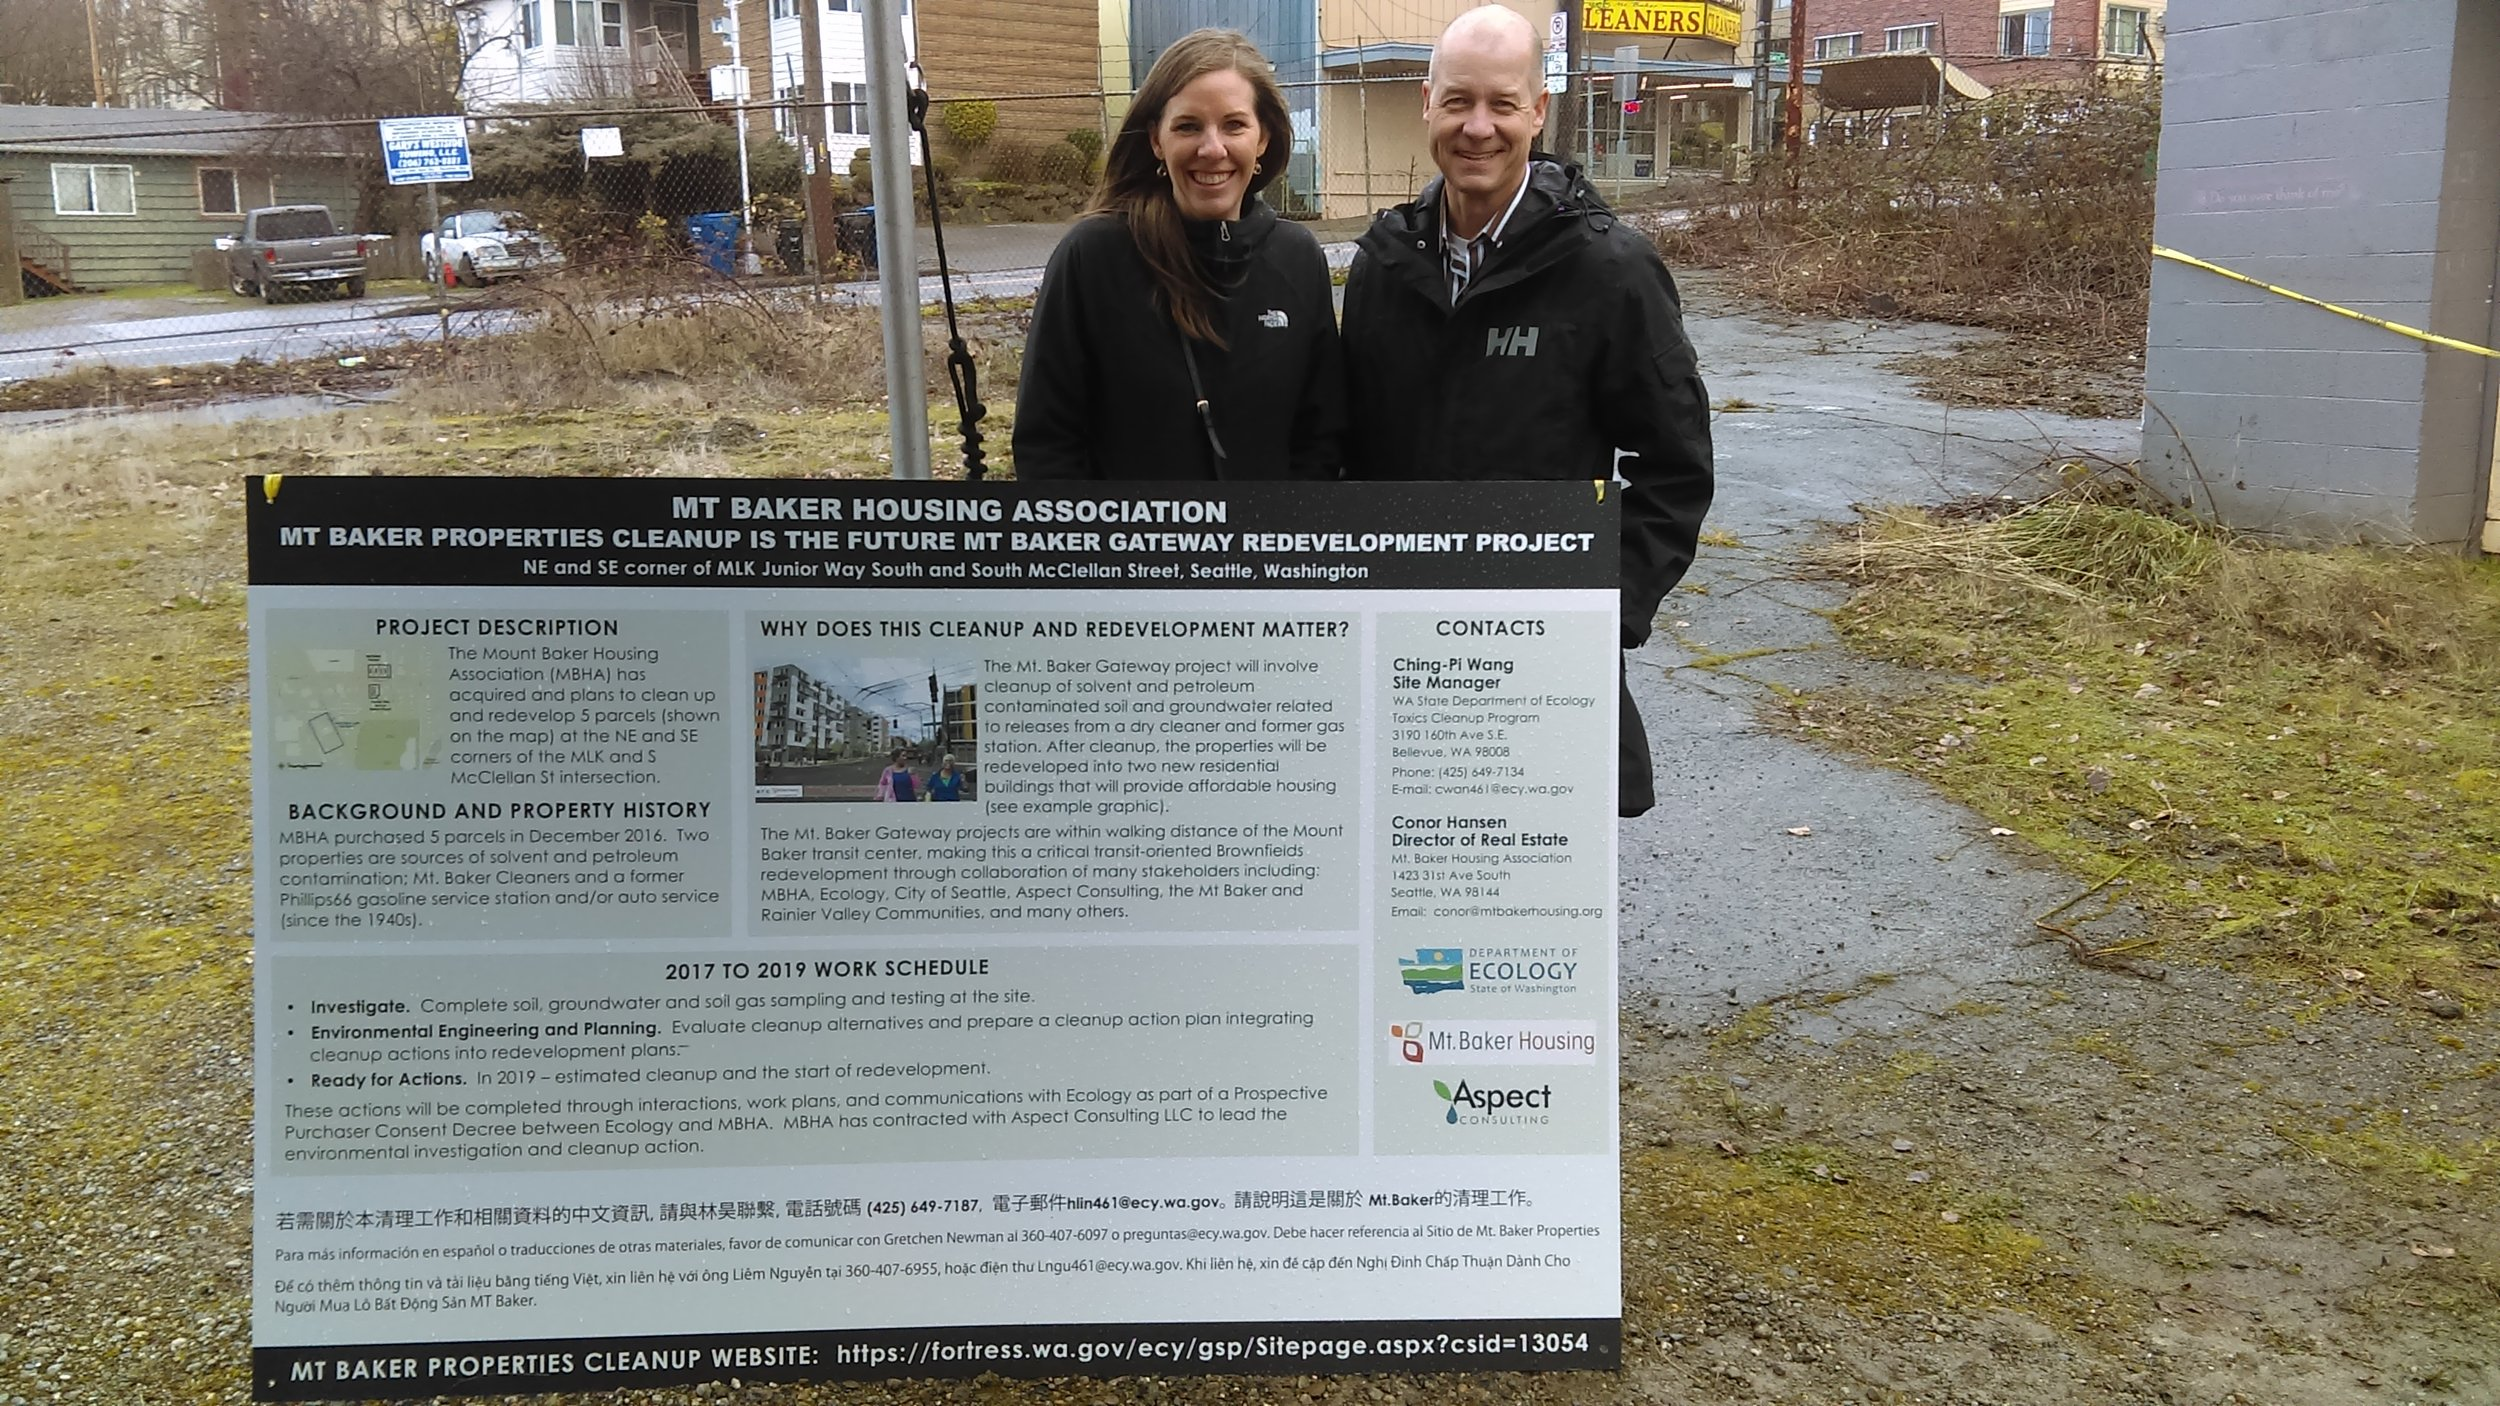 Aspect's Jessica Smith and Dave Cook at the site of the Mt. Baker Gateway project.